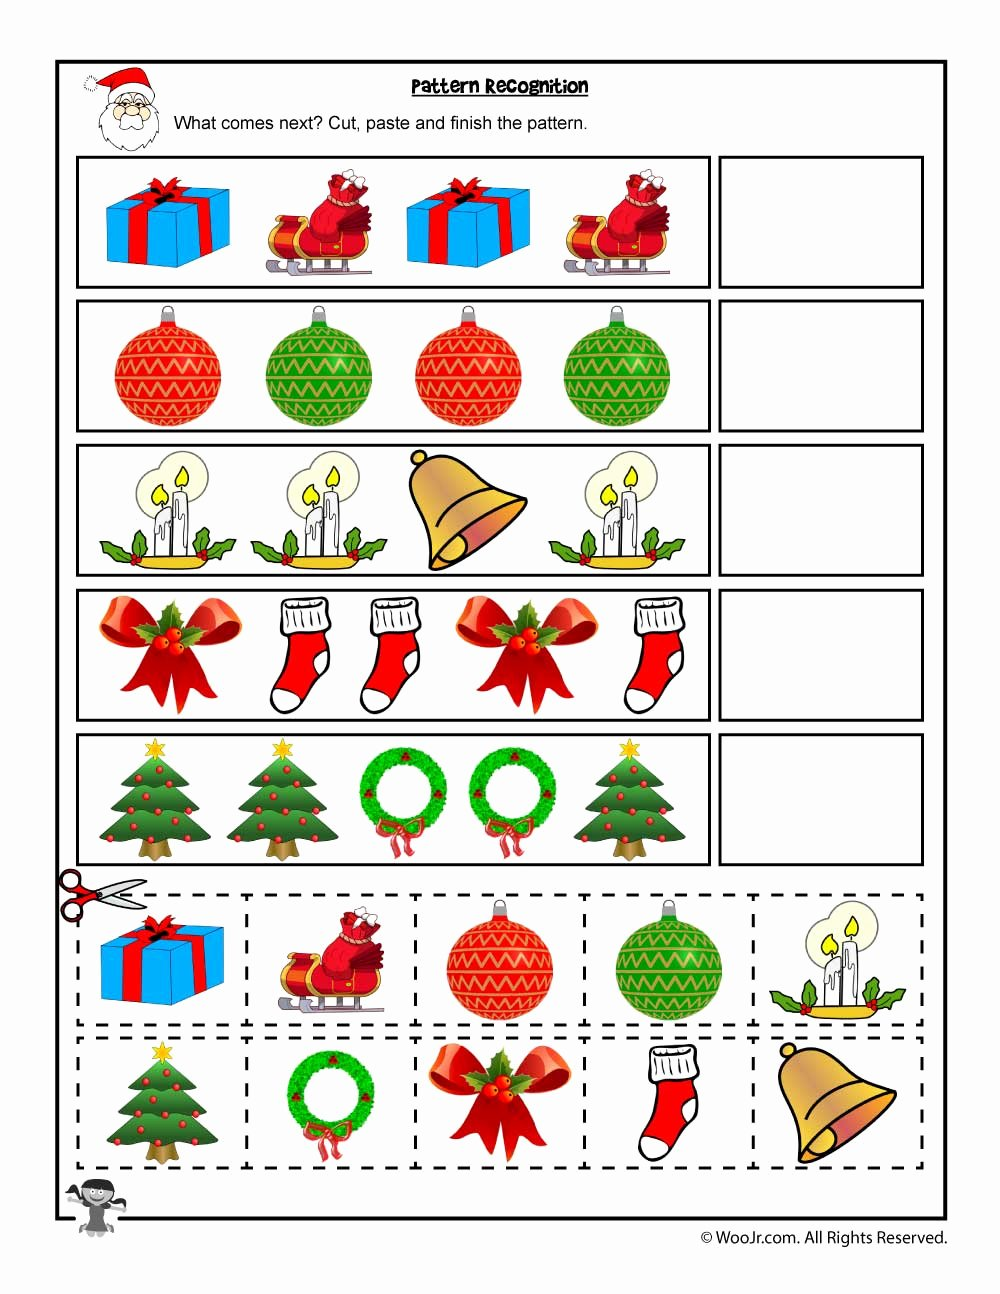 Christmas Pattern Worksheets for Preschoolers Free Cut and Paste Christmas Pattern Recognition Worksheet